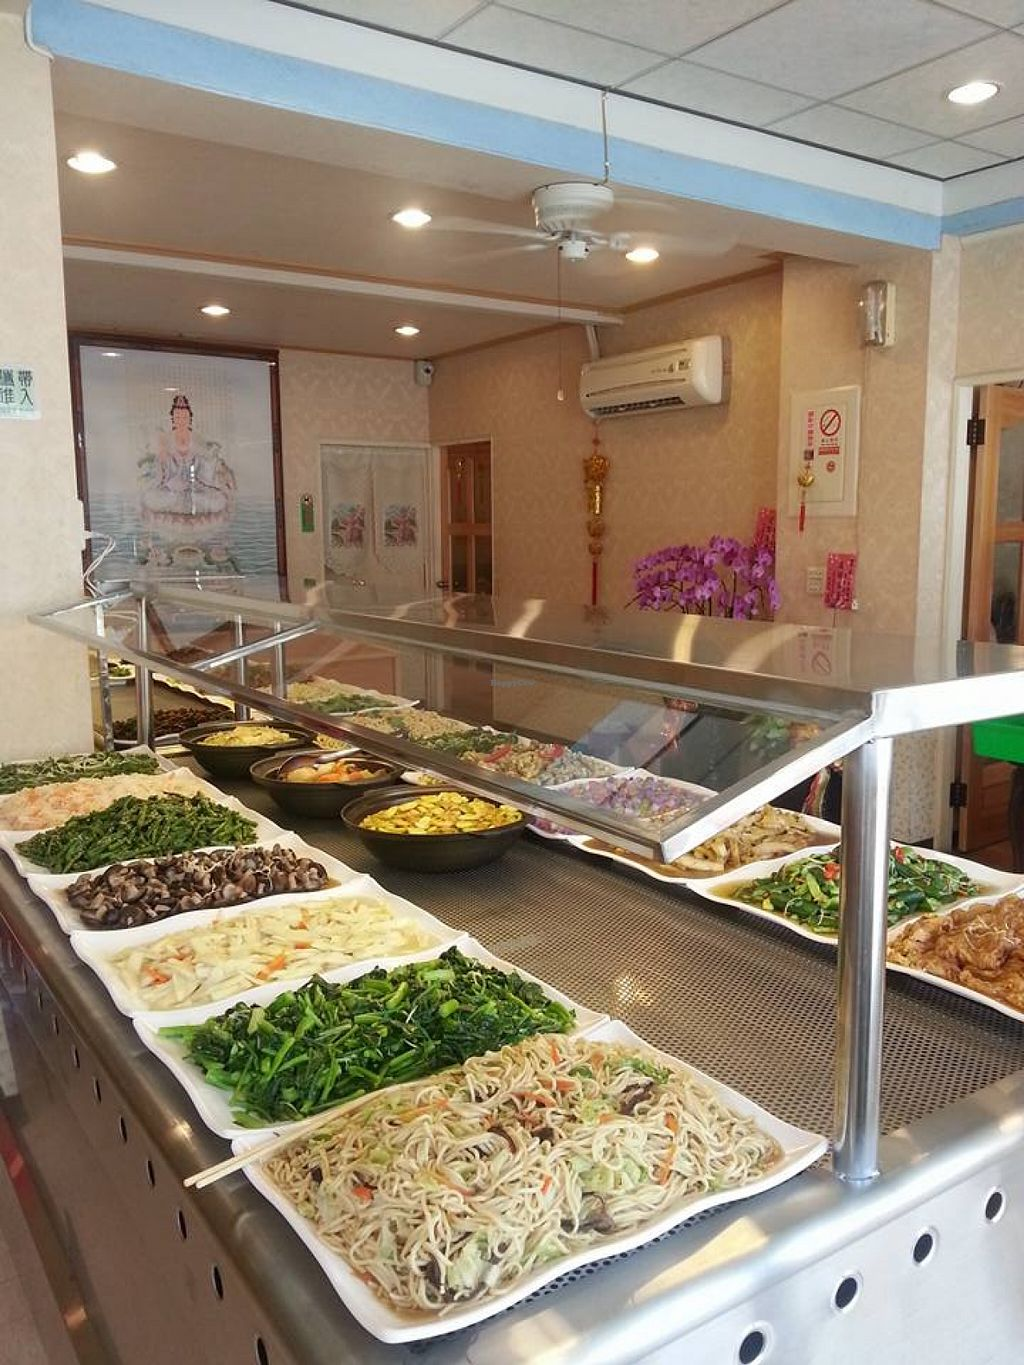 """Photo of Wan Pin Xiang  by <a href=""""/members/profile/community"""">community</a> <br/>vegetarian buffet  <br/> November 6, 2015  - <a href='/contact/abuse/image/65211/124129'>Report</a>"""